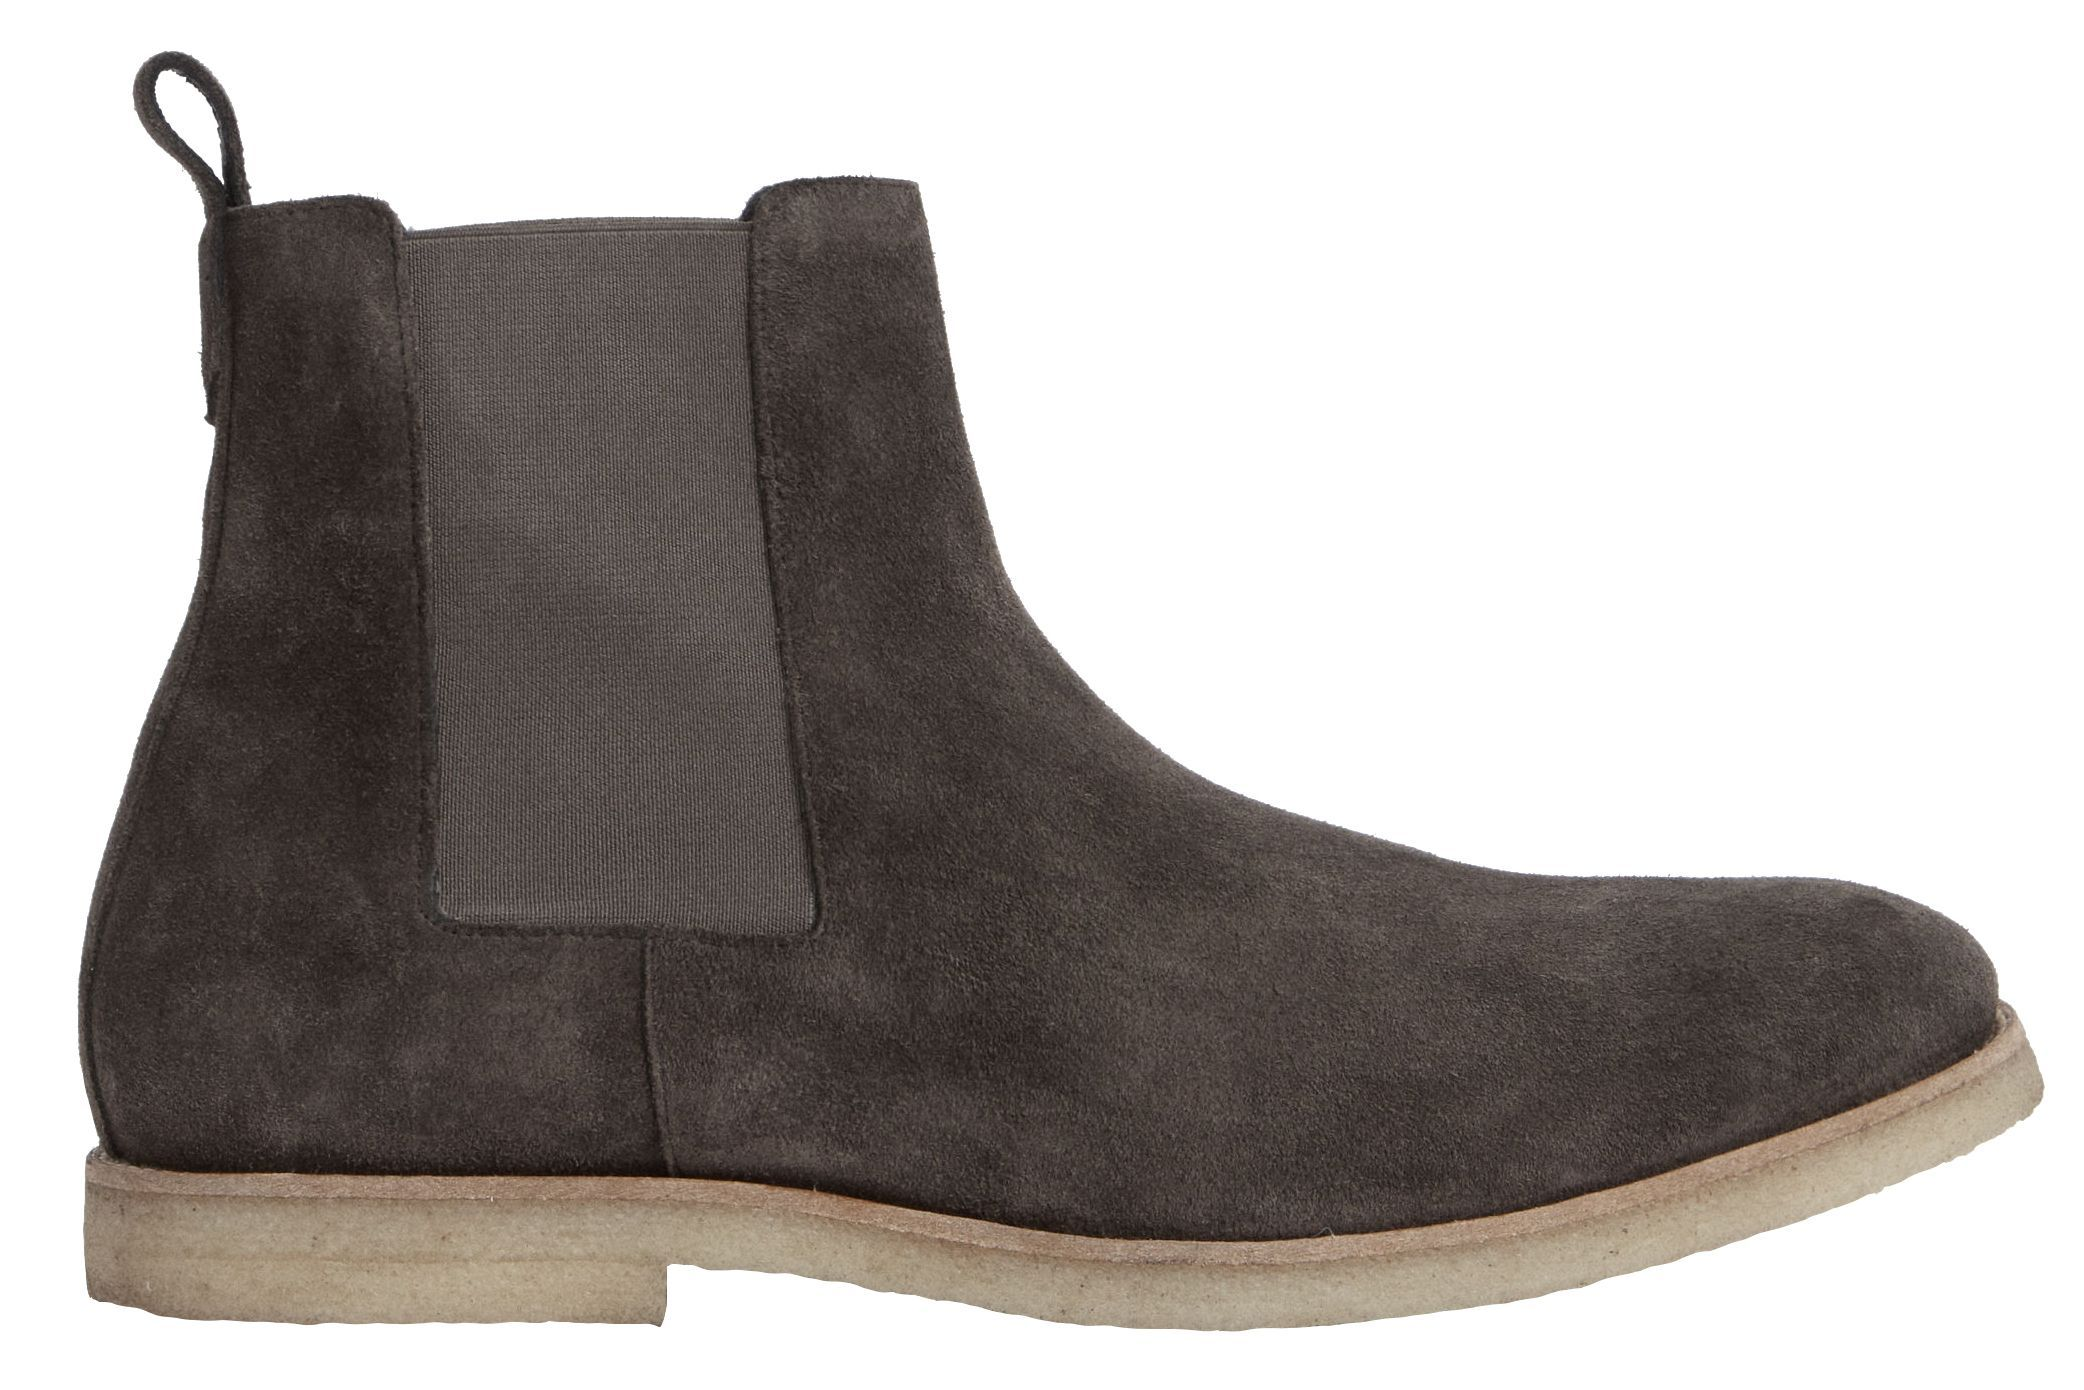 cd8175d2a7ac2 11 Best Suede Chelsea Boots for Men 2019 - Spring Shoes for Men